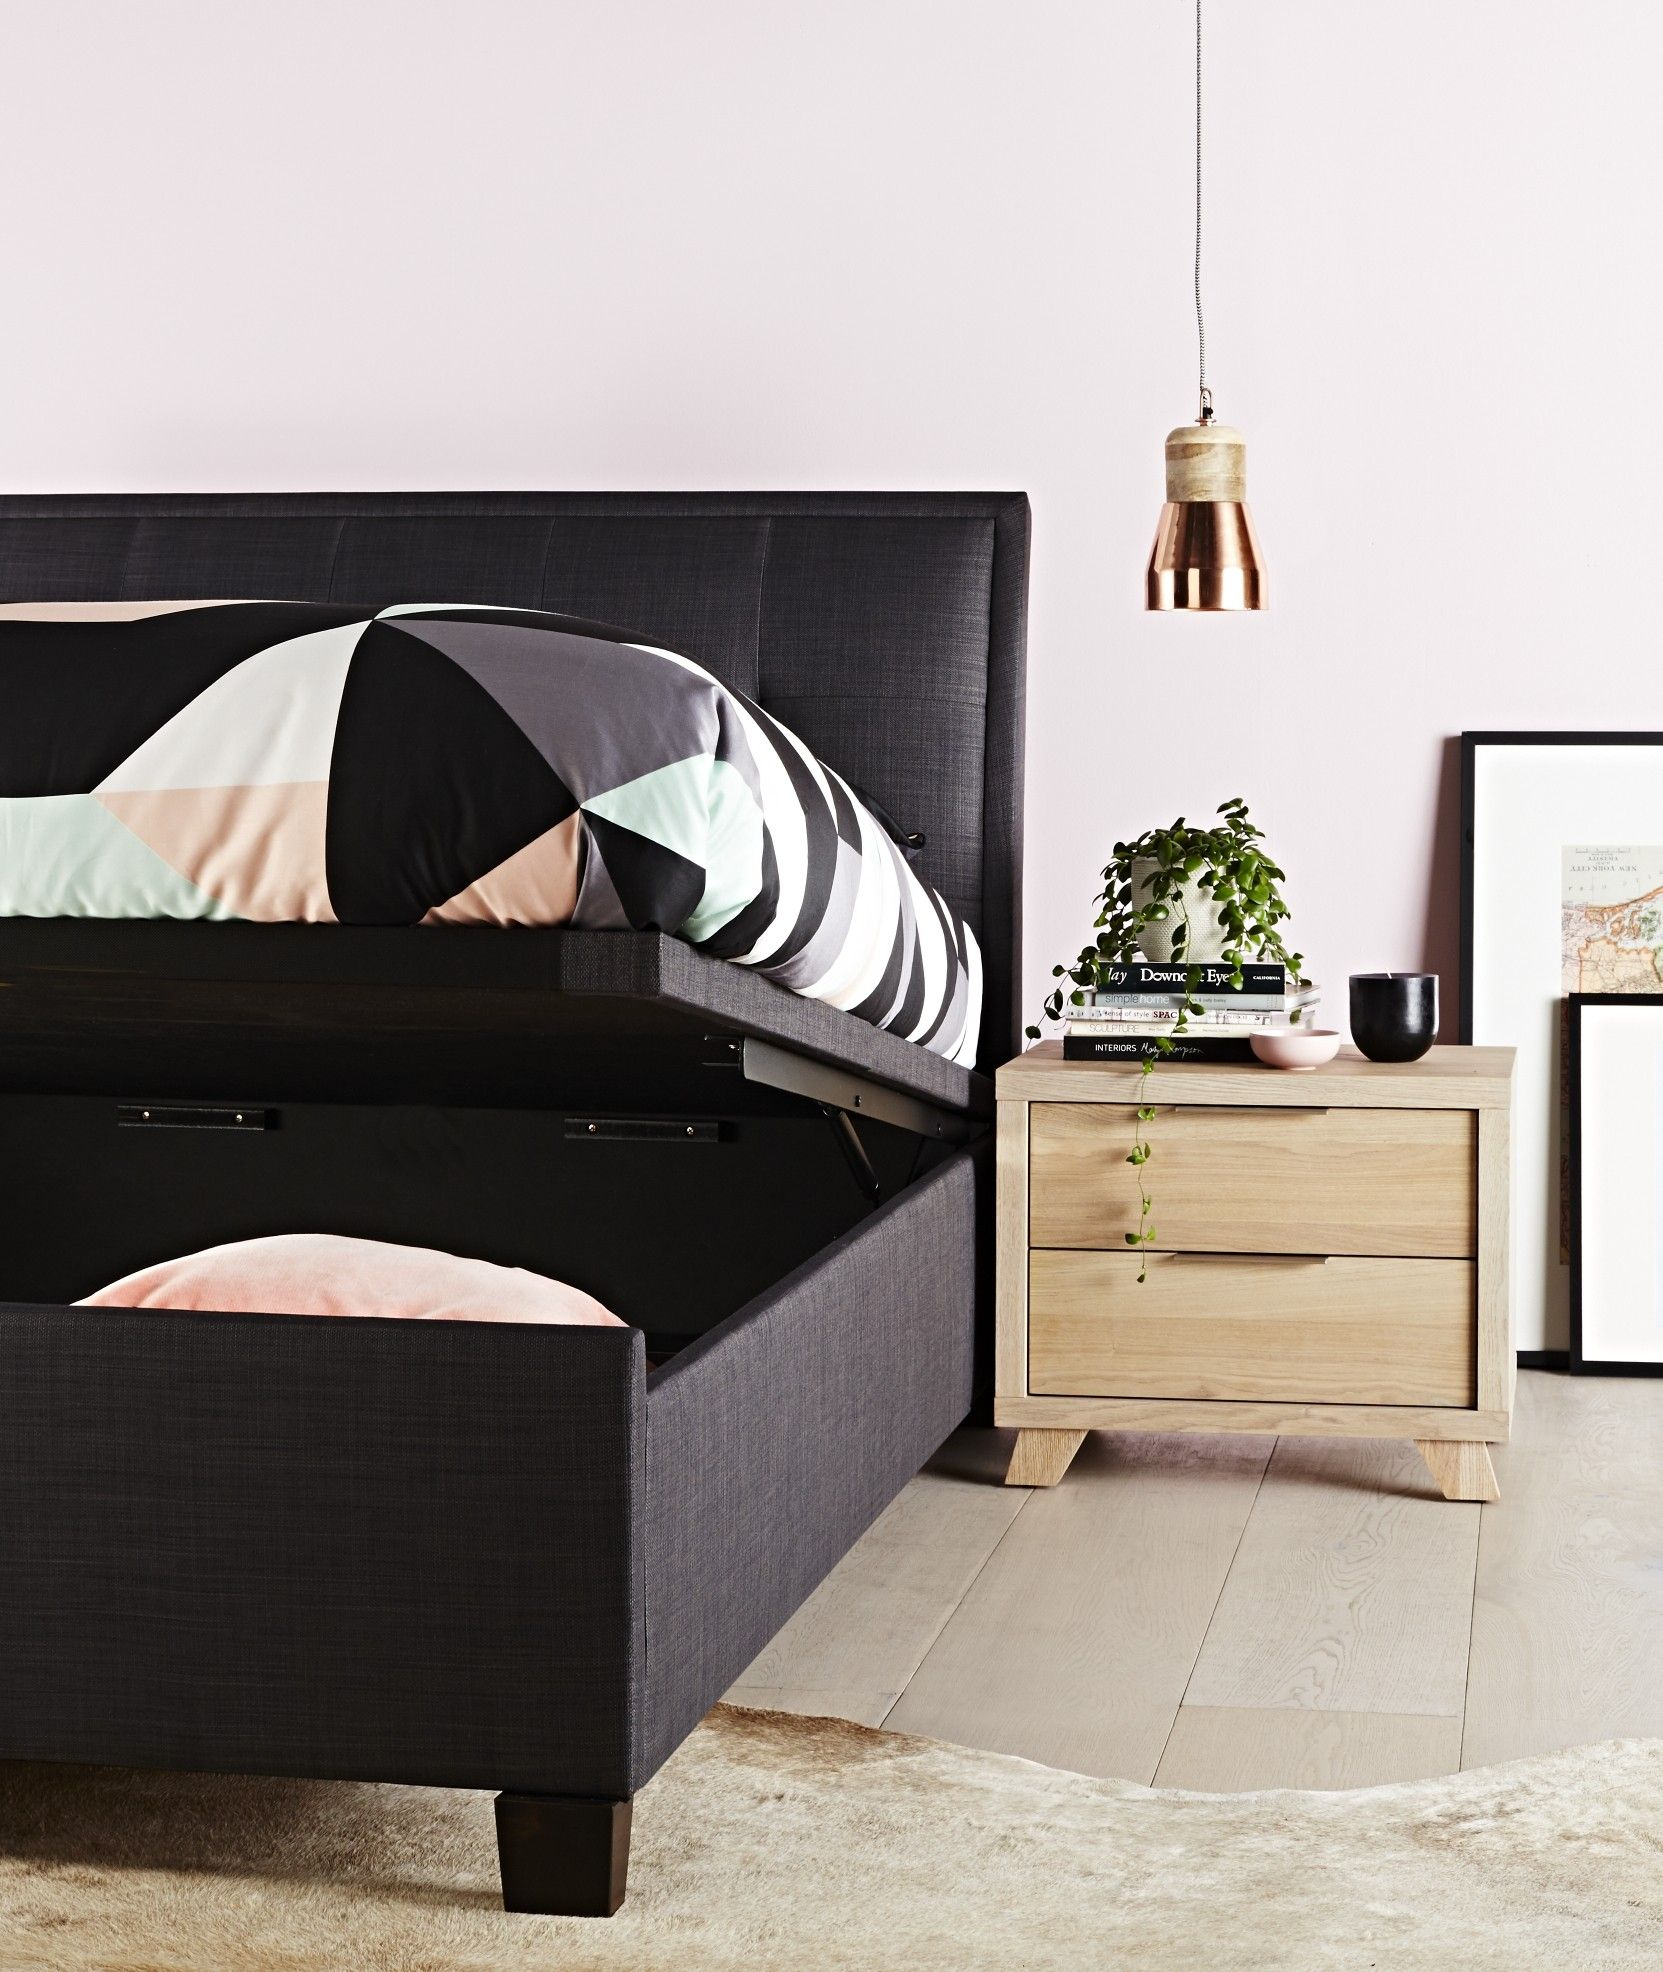 Bedroom Furniture Melbourne accent bedroom furniture (drawer base) - the accent is a modern